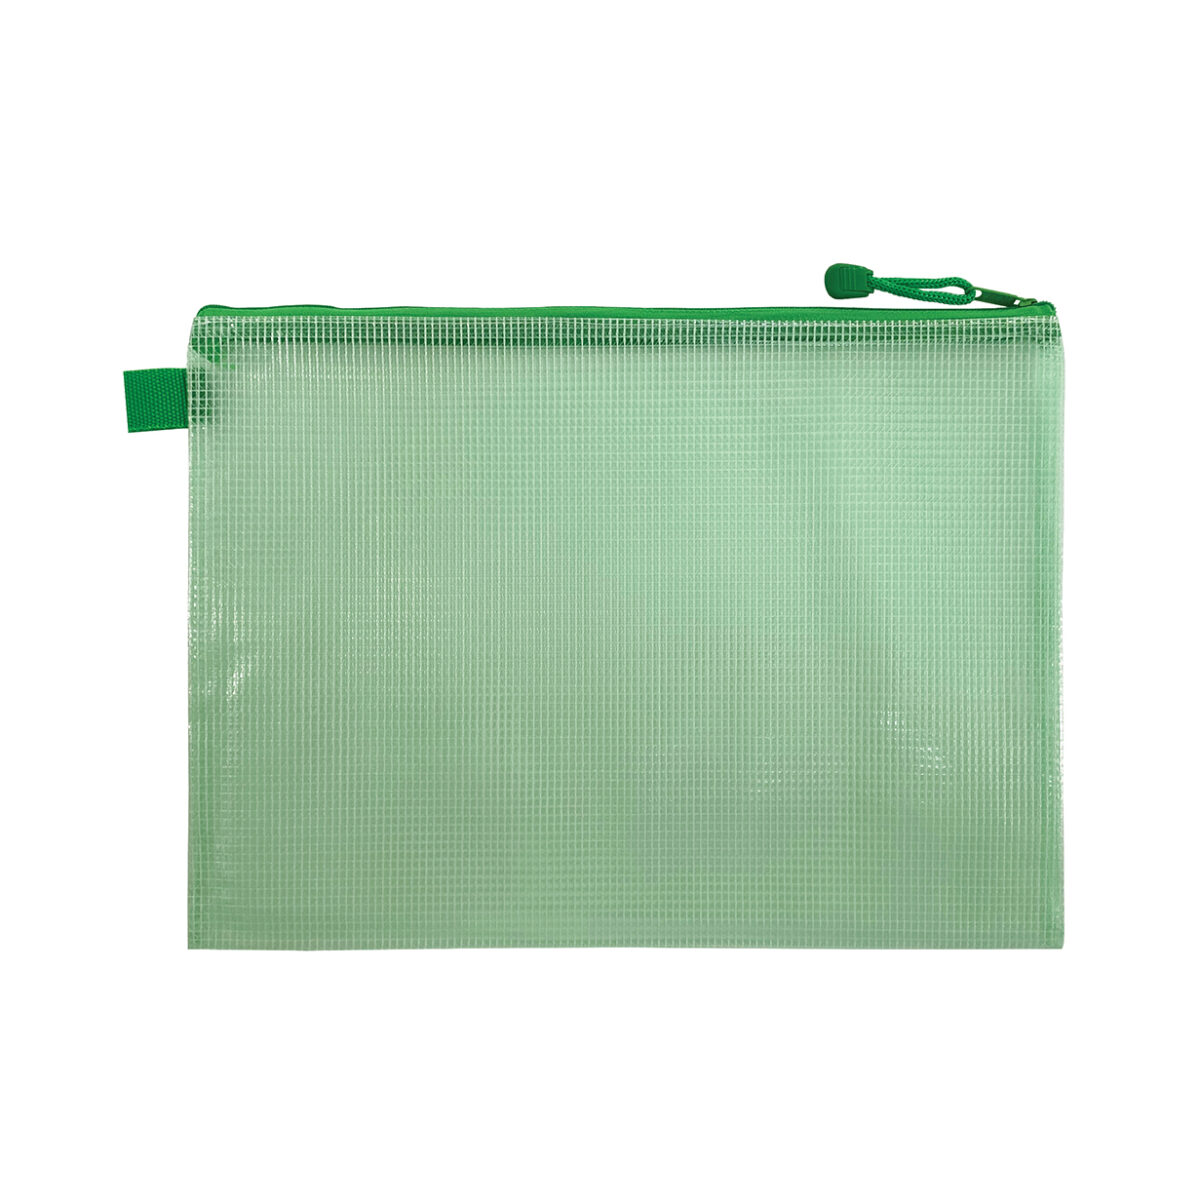 Translucent Mesh Bag/ Mesh Pouch with Zipper